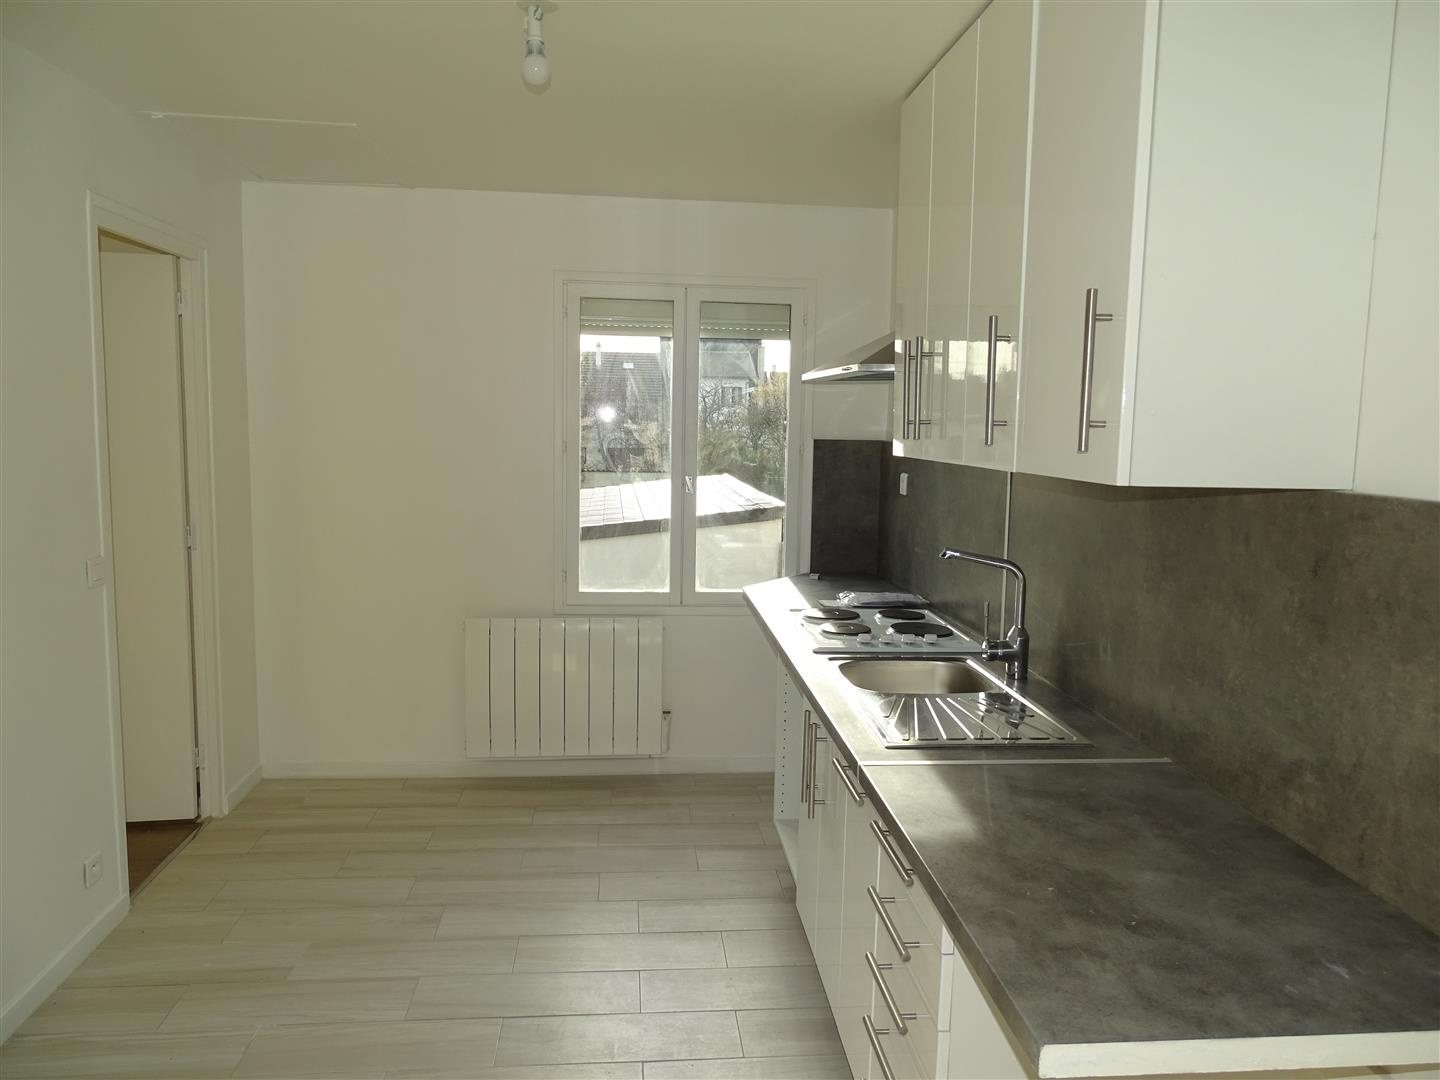 Offres de location Appartement Mitry-Mory 77290